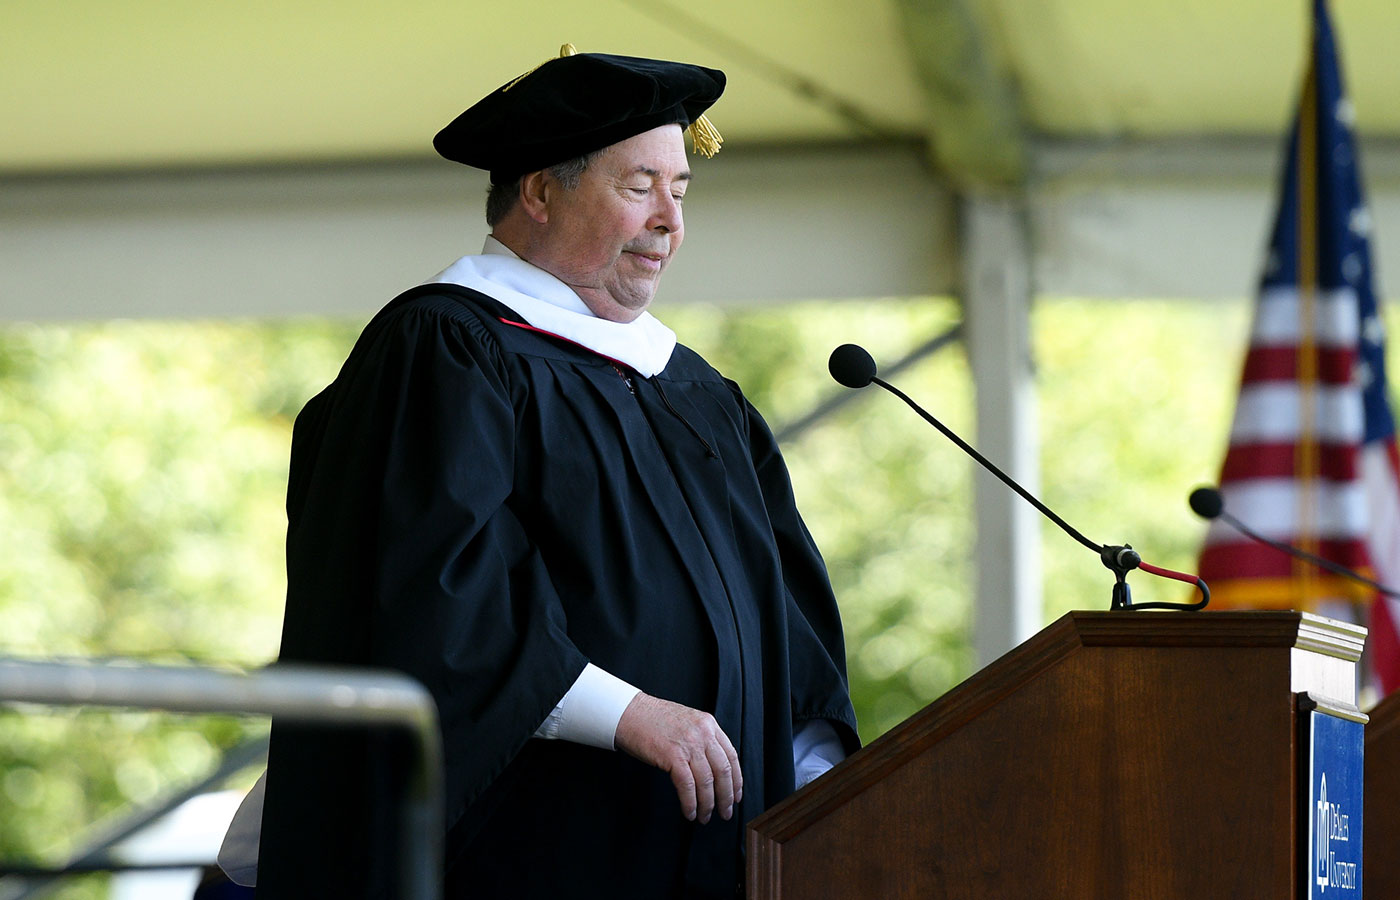 Paul Meiklejohn giving commencement speech